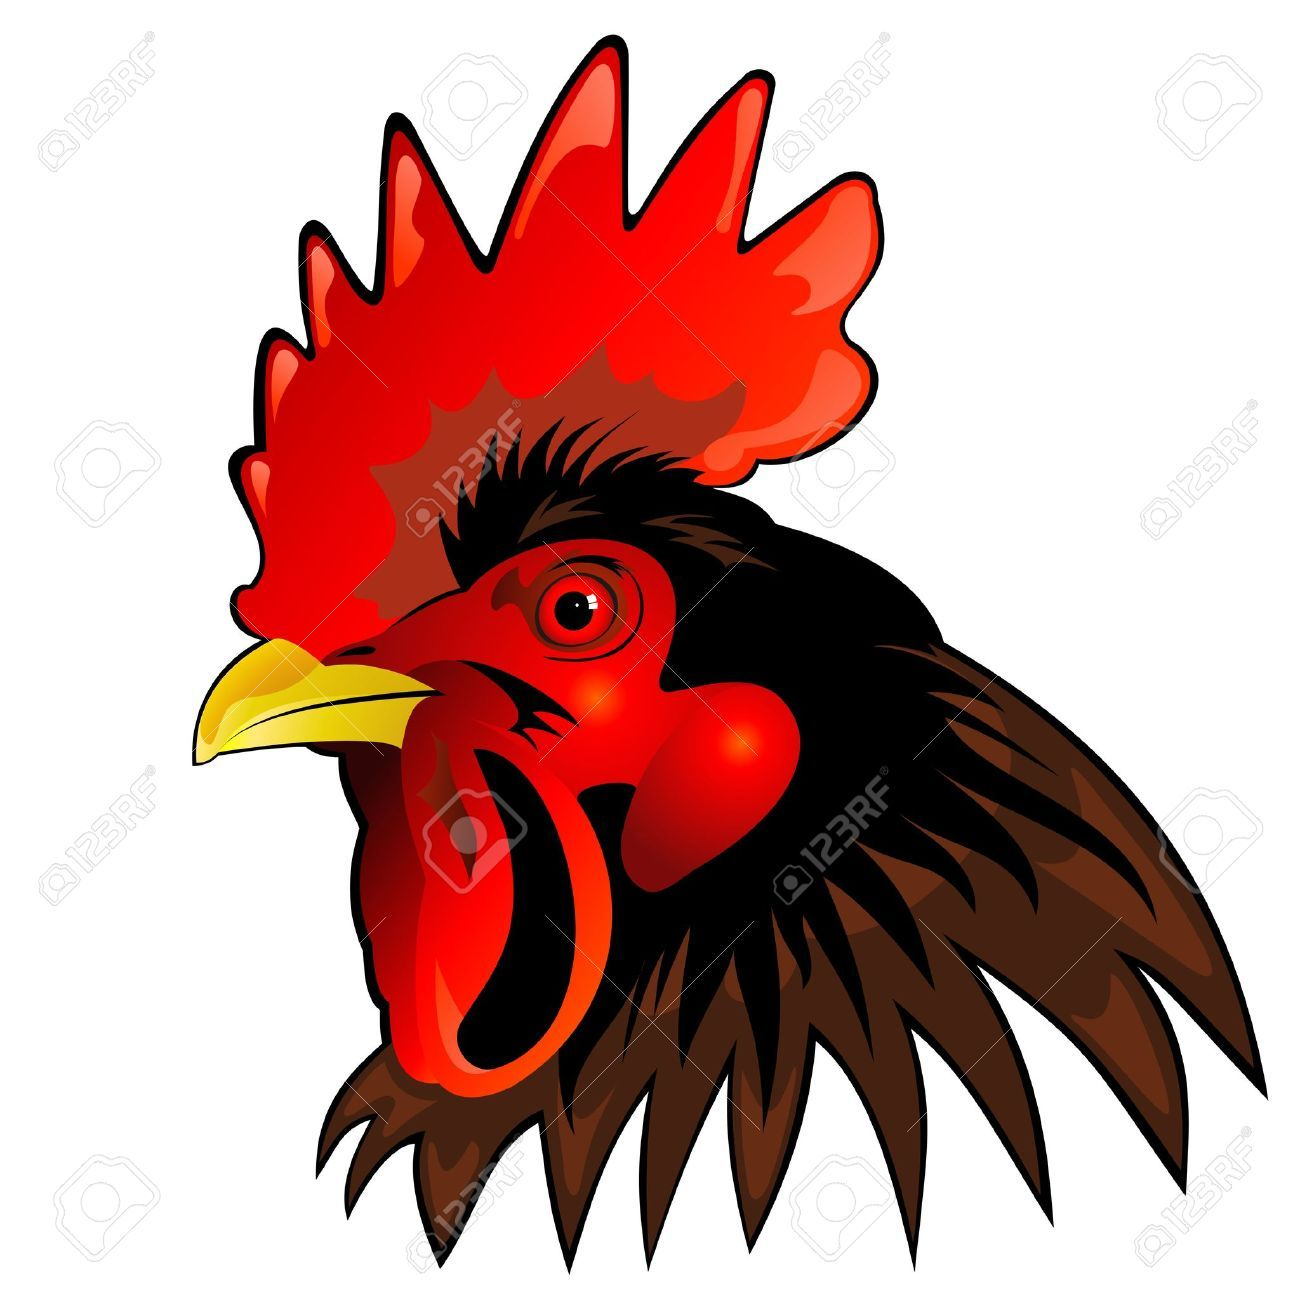 Wild fowl head clipart png freeuse Pin by Susan Palmer on lizbday | Chicken clip art, Rooster ... png freeuse